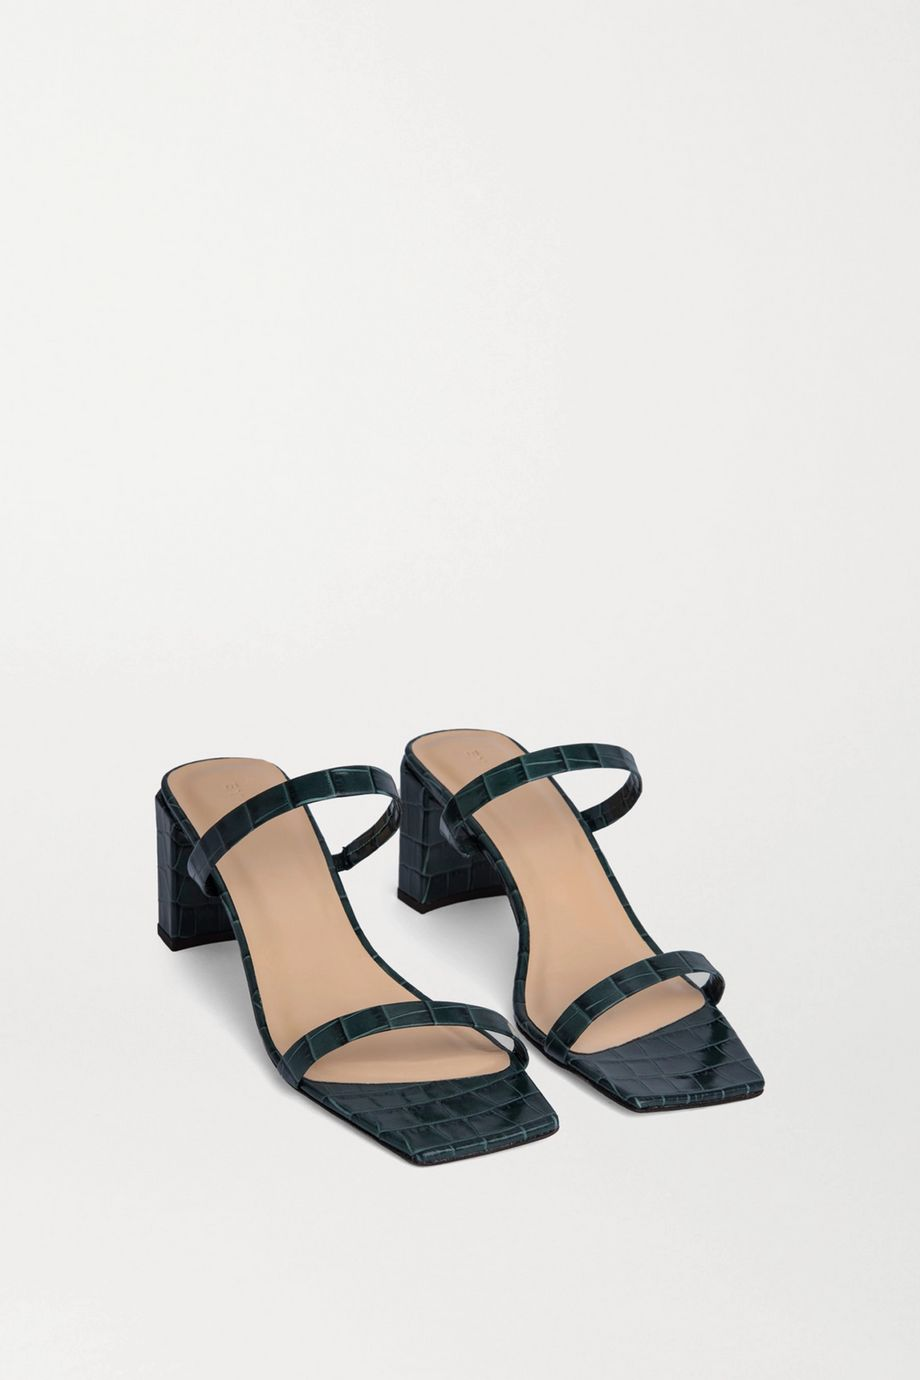 BY FAR Tanya croc-effect leather mules